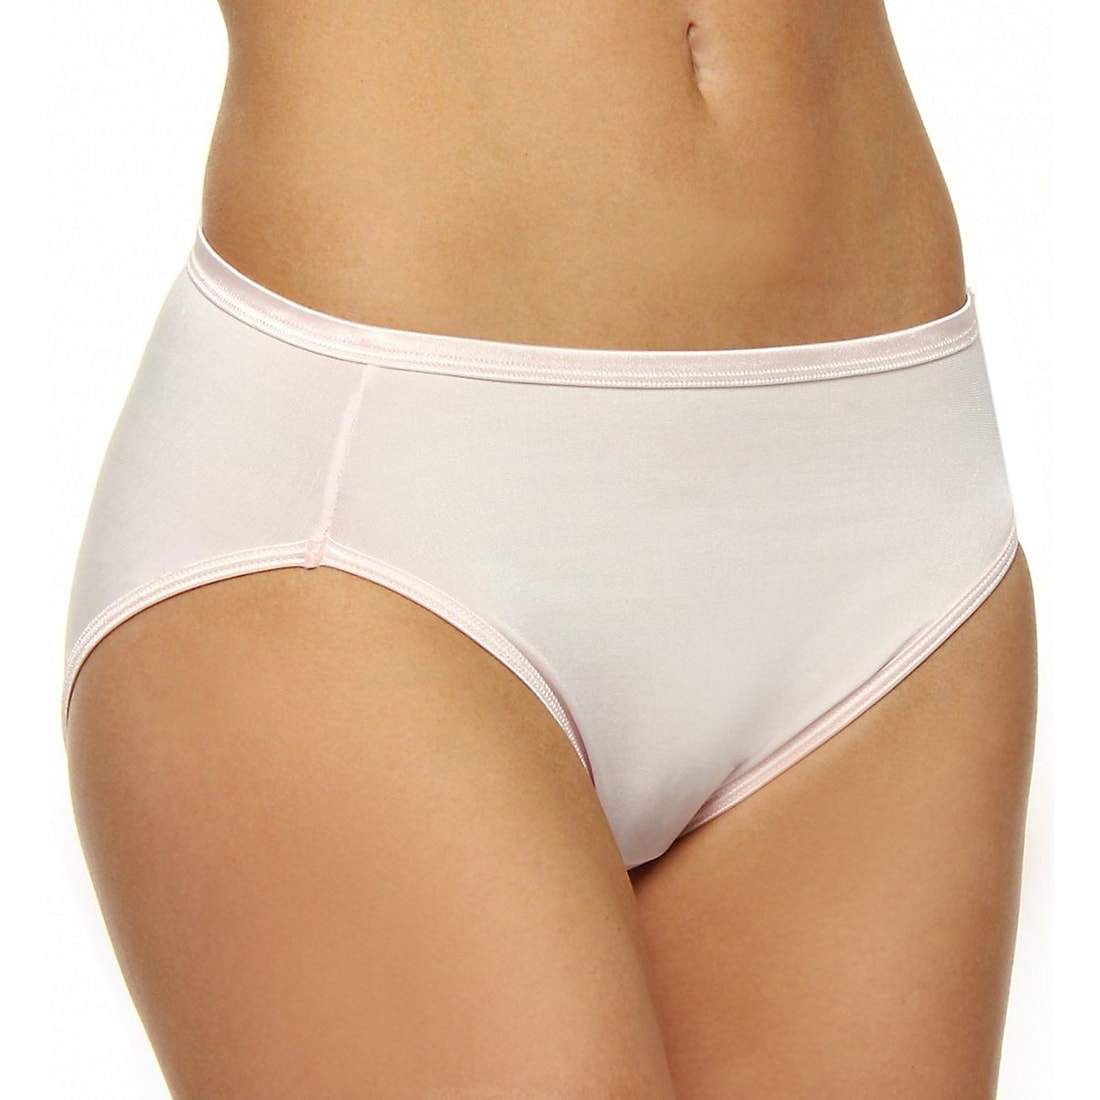 3881eab83813c Shop Vanity Fair Women's illumination Hi Cut Panty 13108 - Free Shipping On  Orders Over $45 - Overstock - 20879171